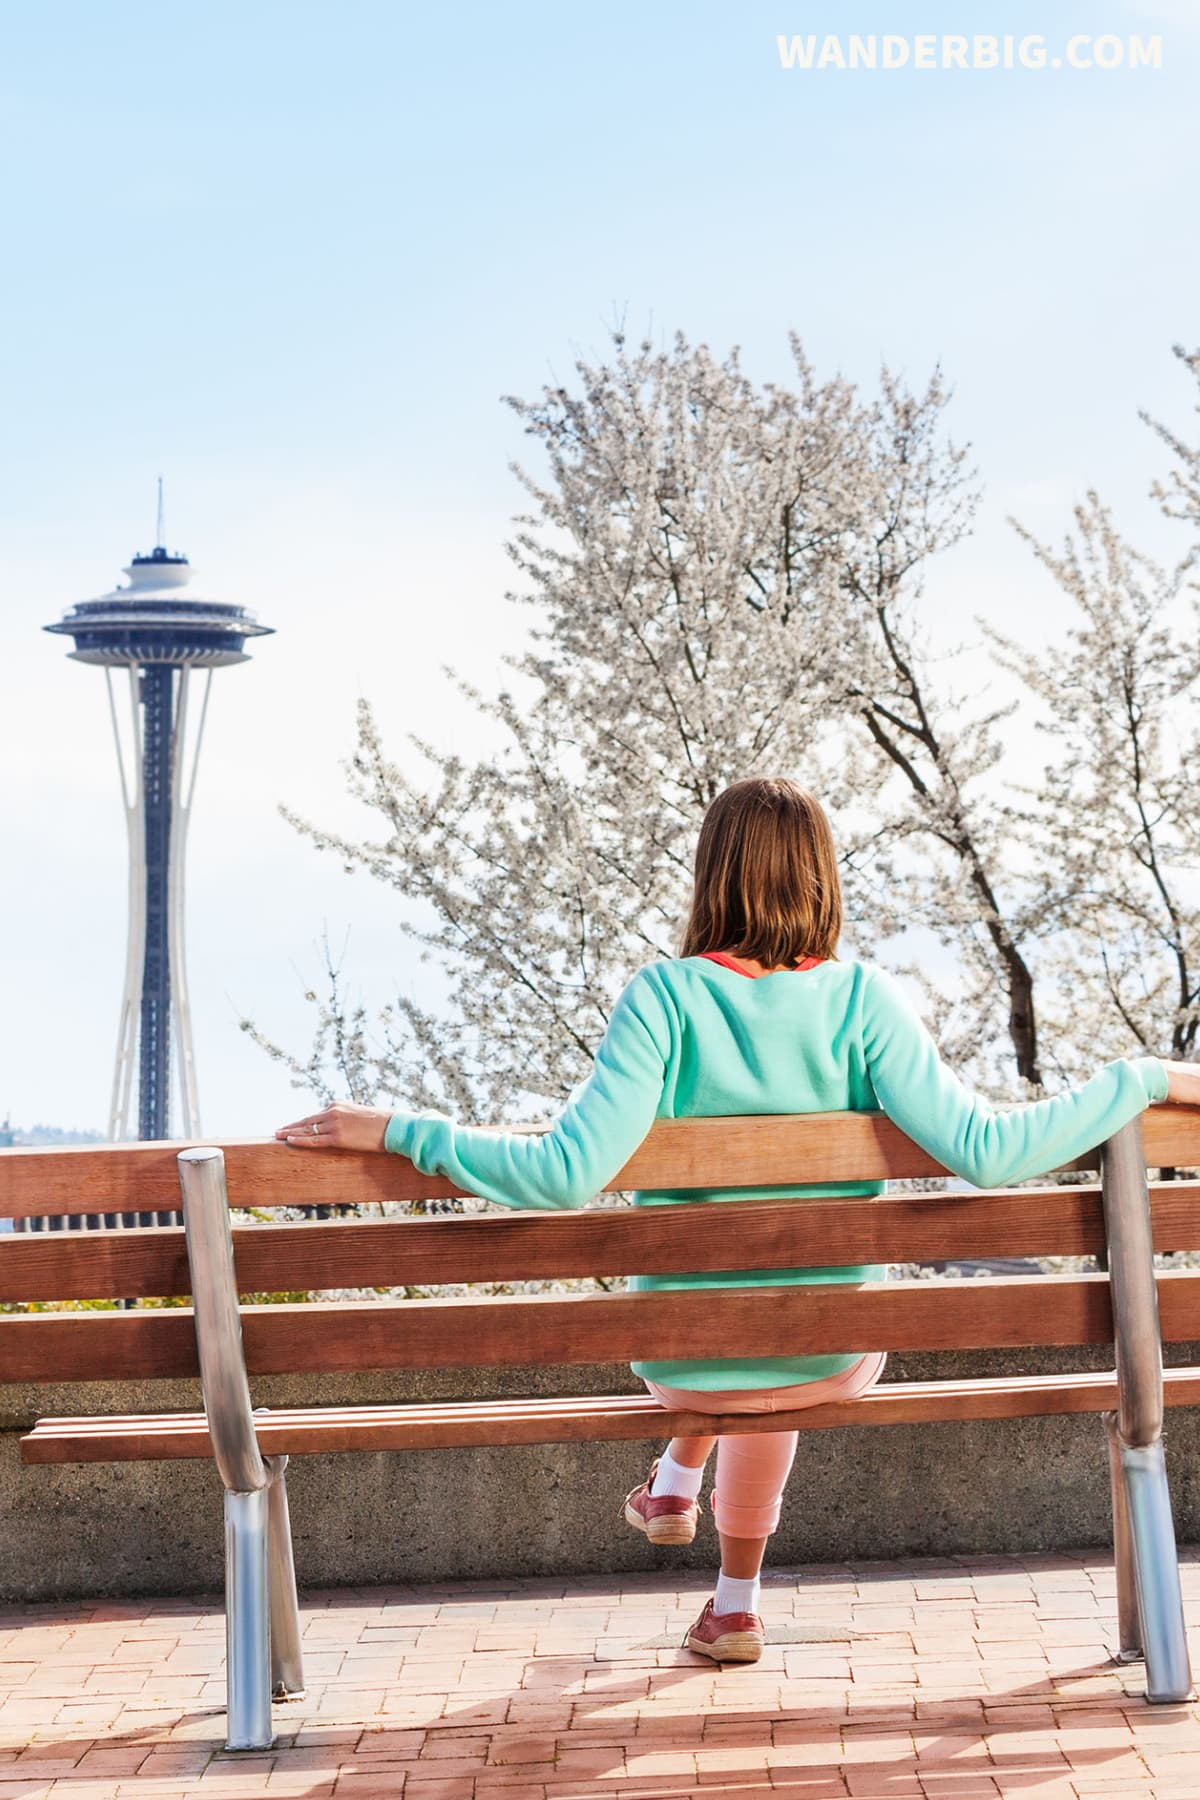 A woman sits on a bend in kerry park in seattle.